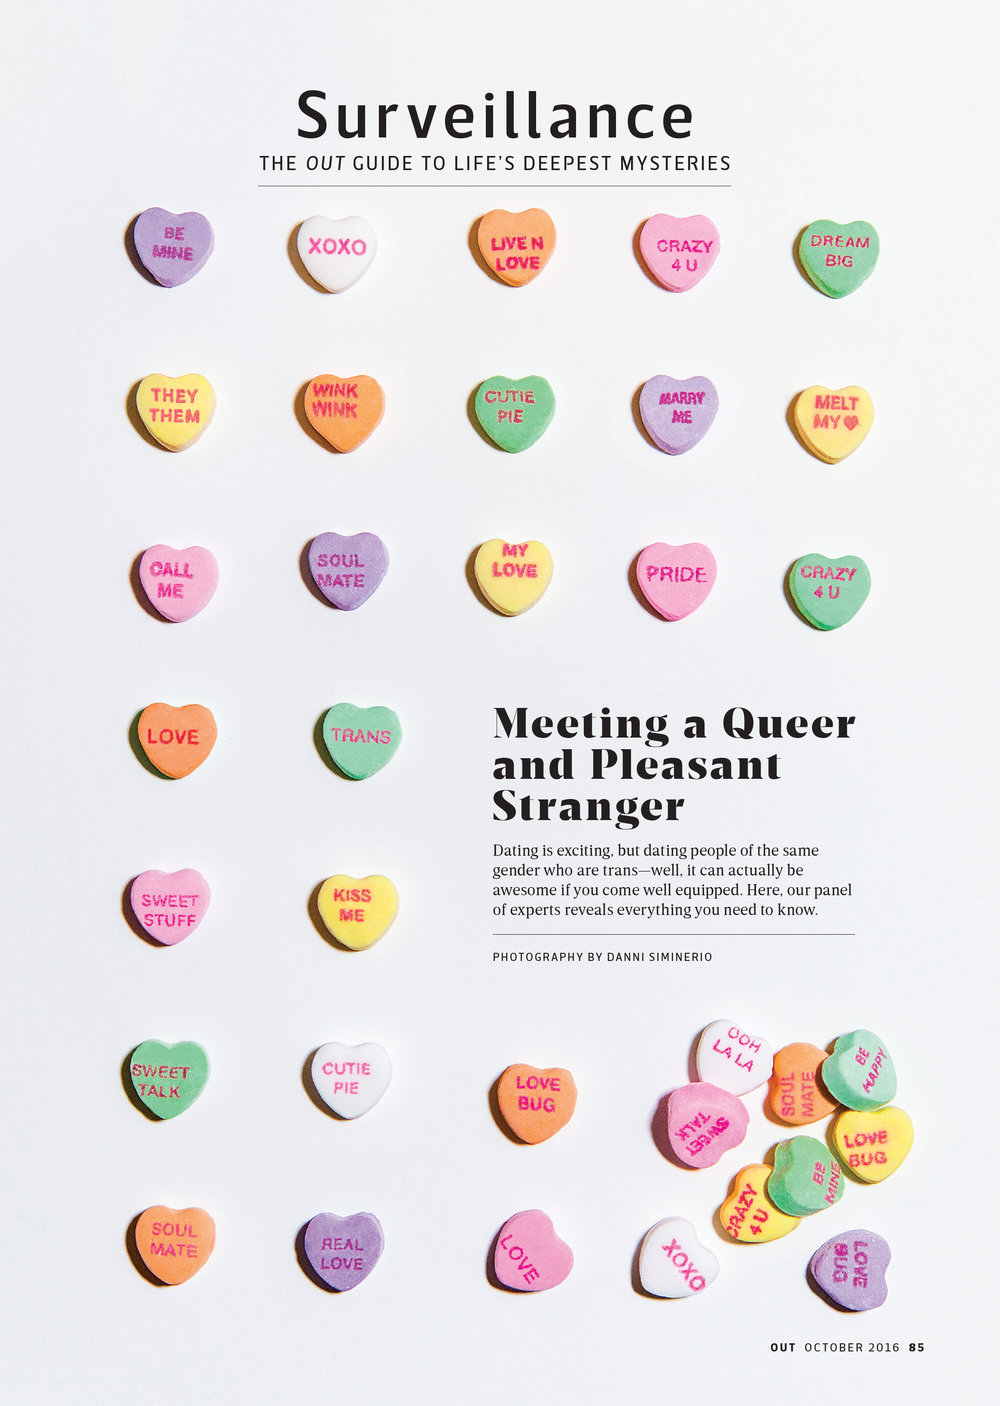 OUT Magazine Surveillance Candy Hearts.jpg